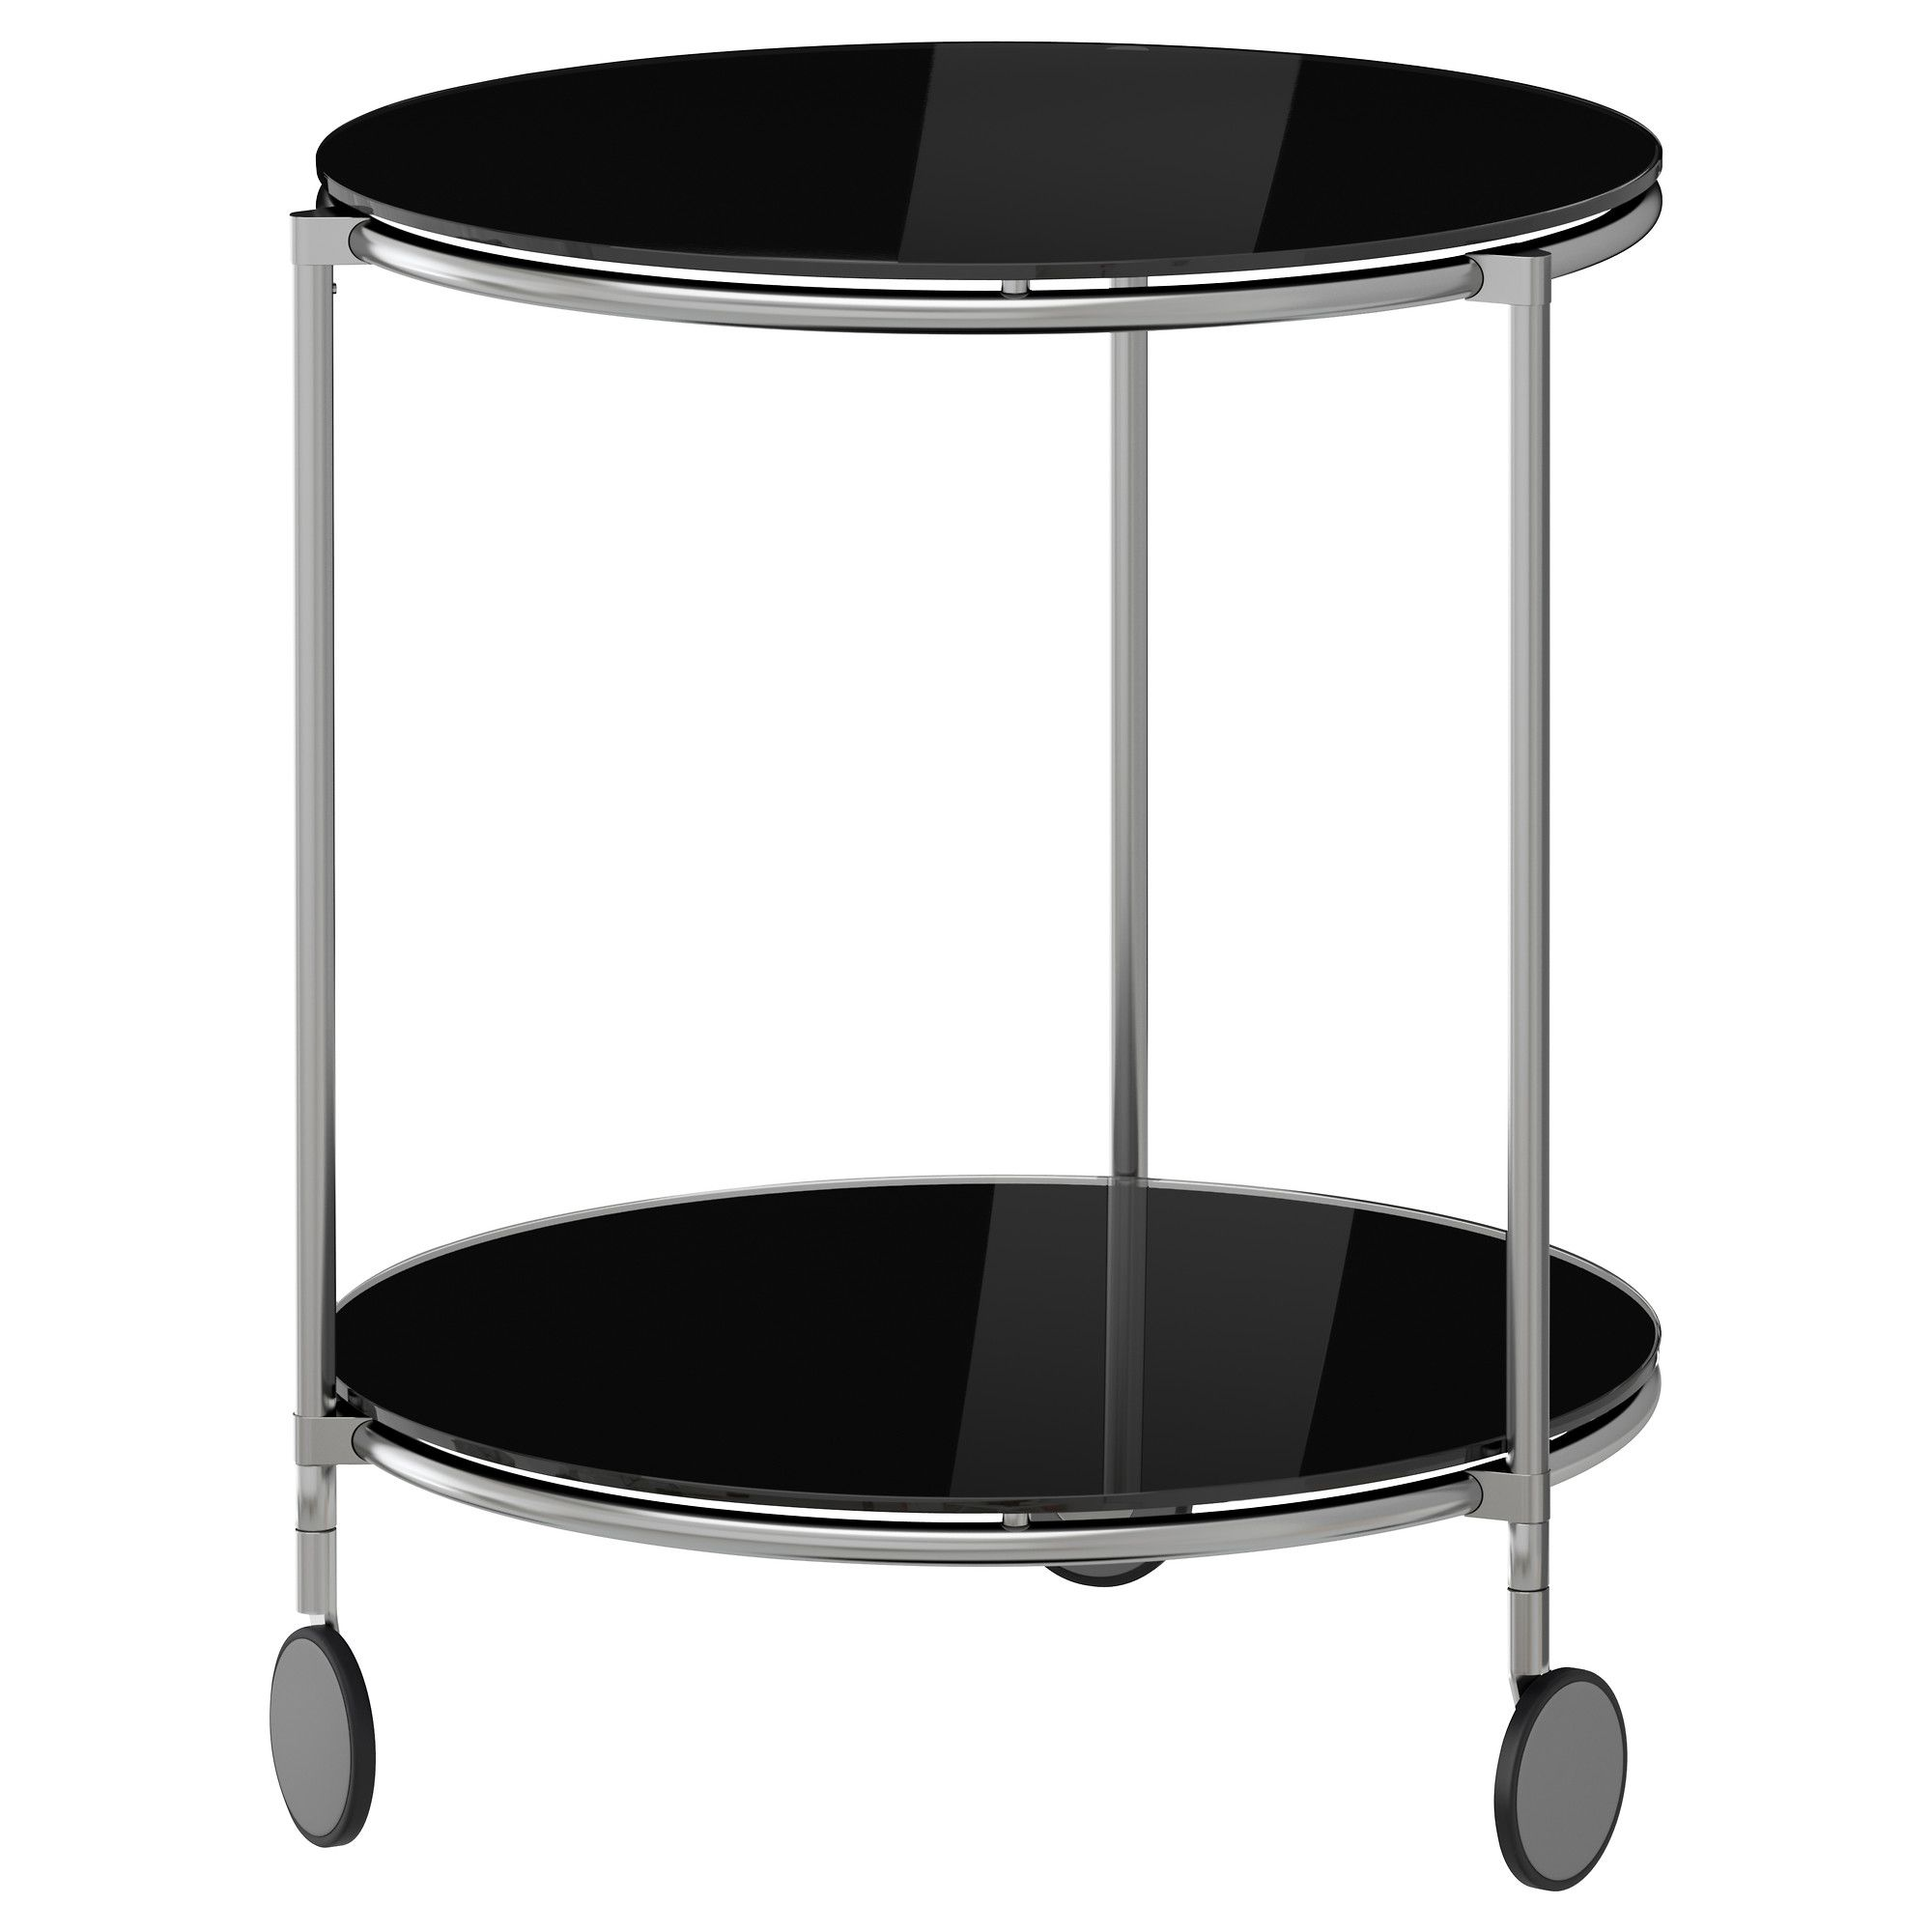 has a swivel out table top for stashing thangss STRIND Side table ...